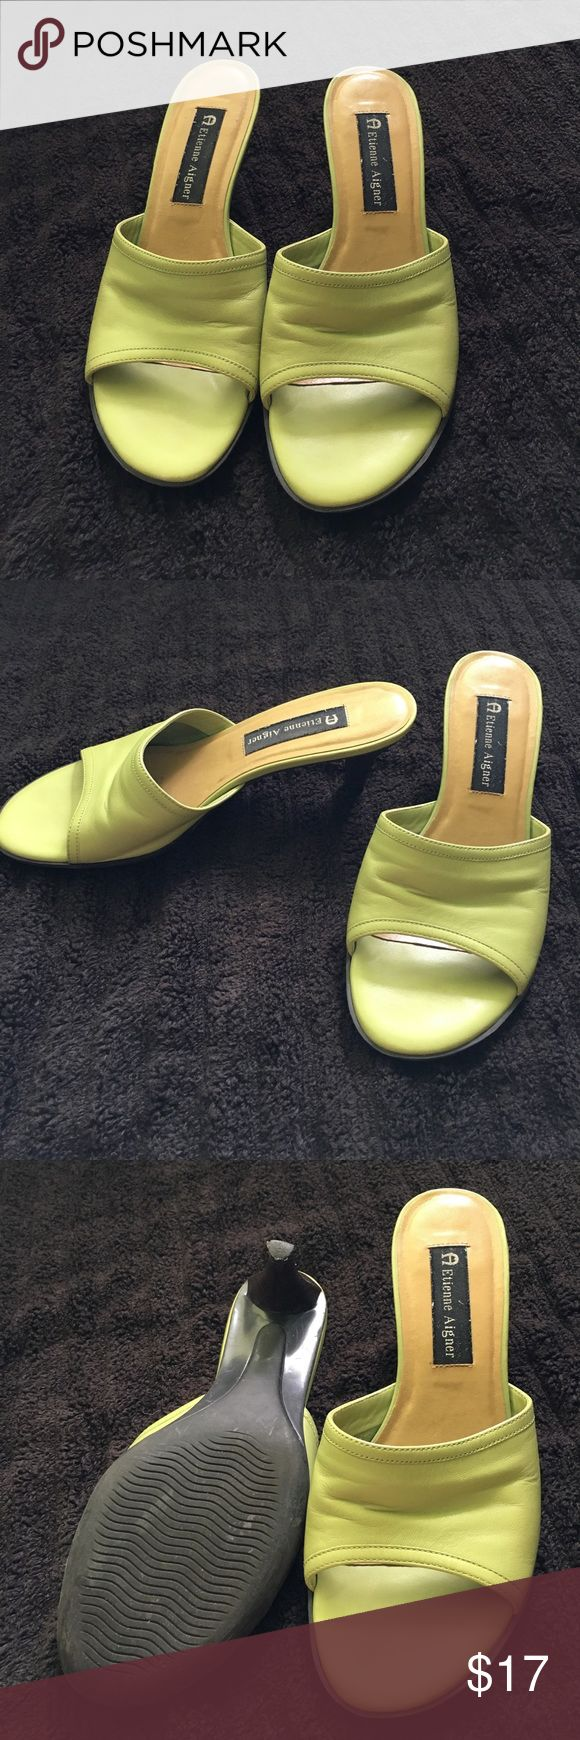 Etienne Aigner Lime Leather Heeled Sandals Size 7 Lime green leather Etienne Aigner Sandlas in very good condition. Etienne Aigner Shoes Sandals